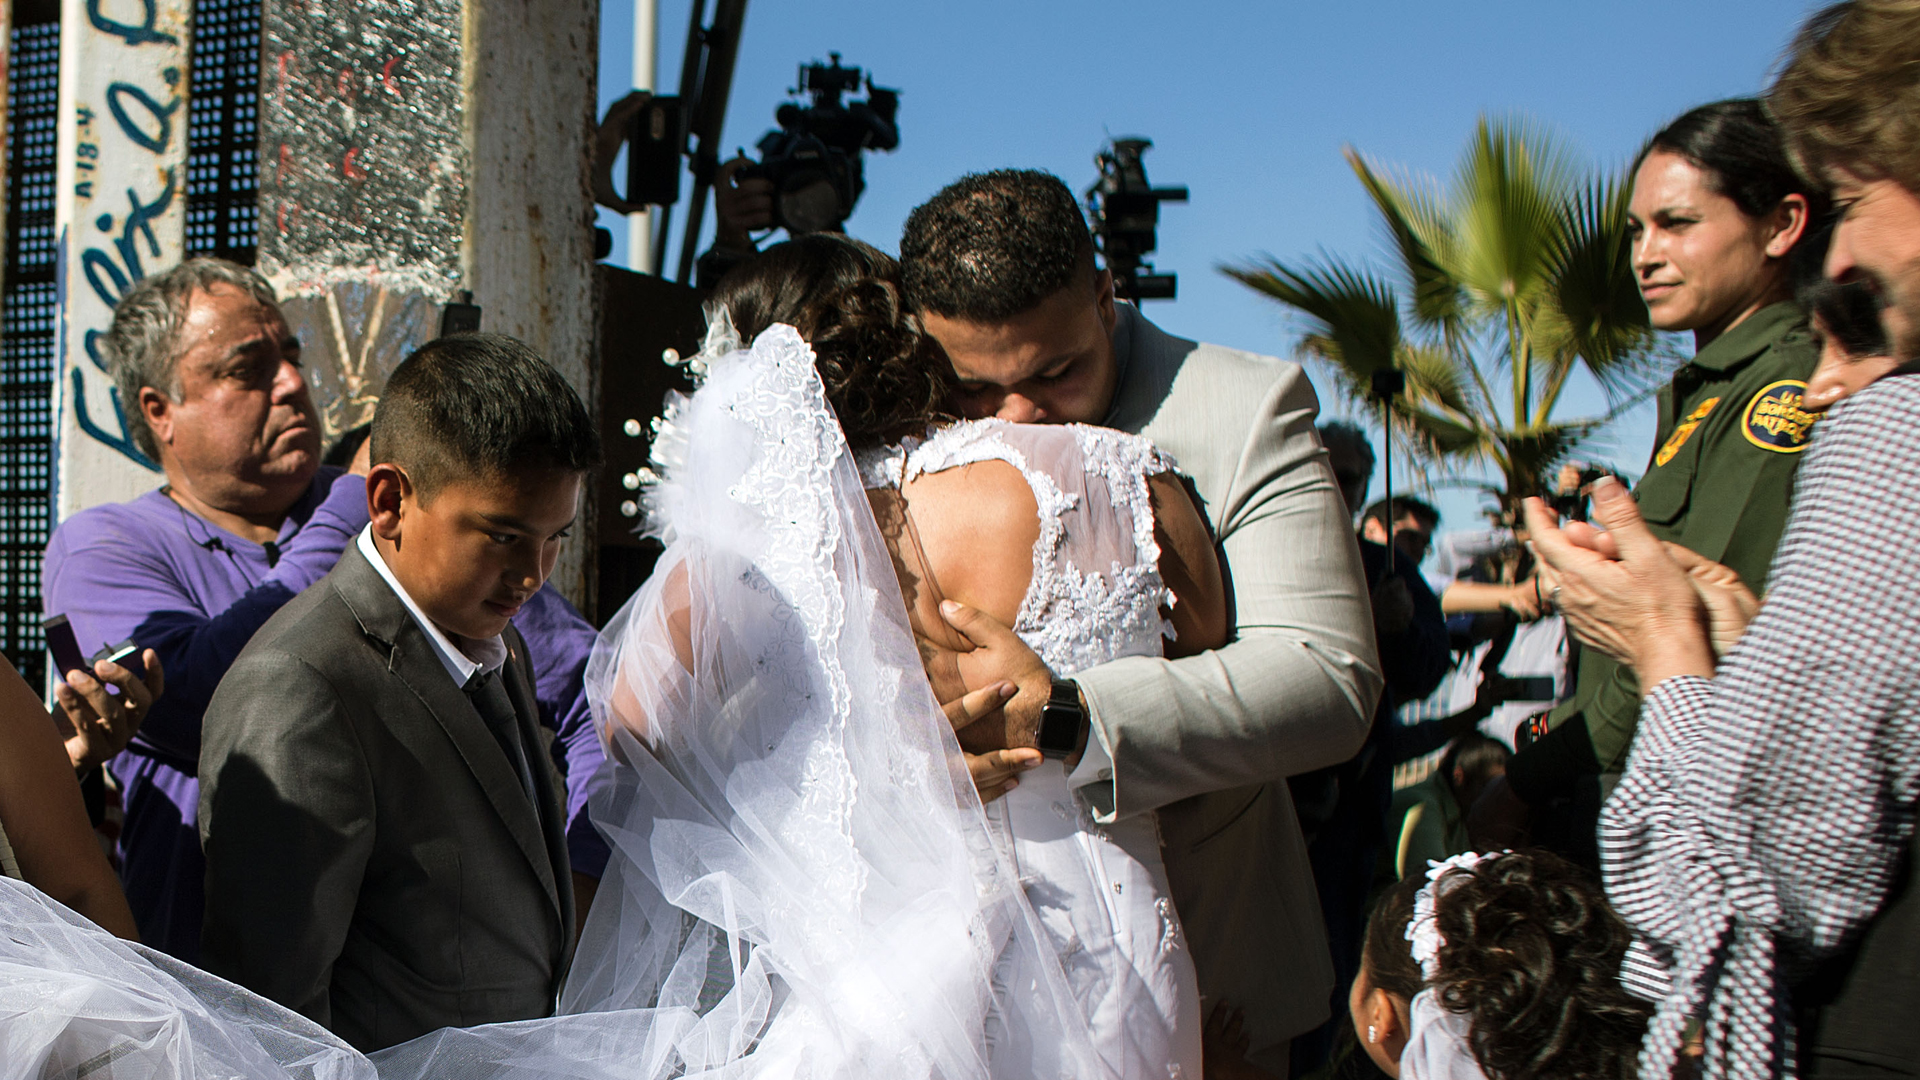 Brian Houston is seen hugging the bride at his wedding on the U.S.-Mexico border on Nov. 18, 2017. (Credit: GUILLERMO ARIAS/AFP/Getty Images)